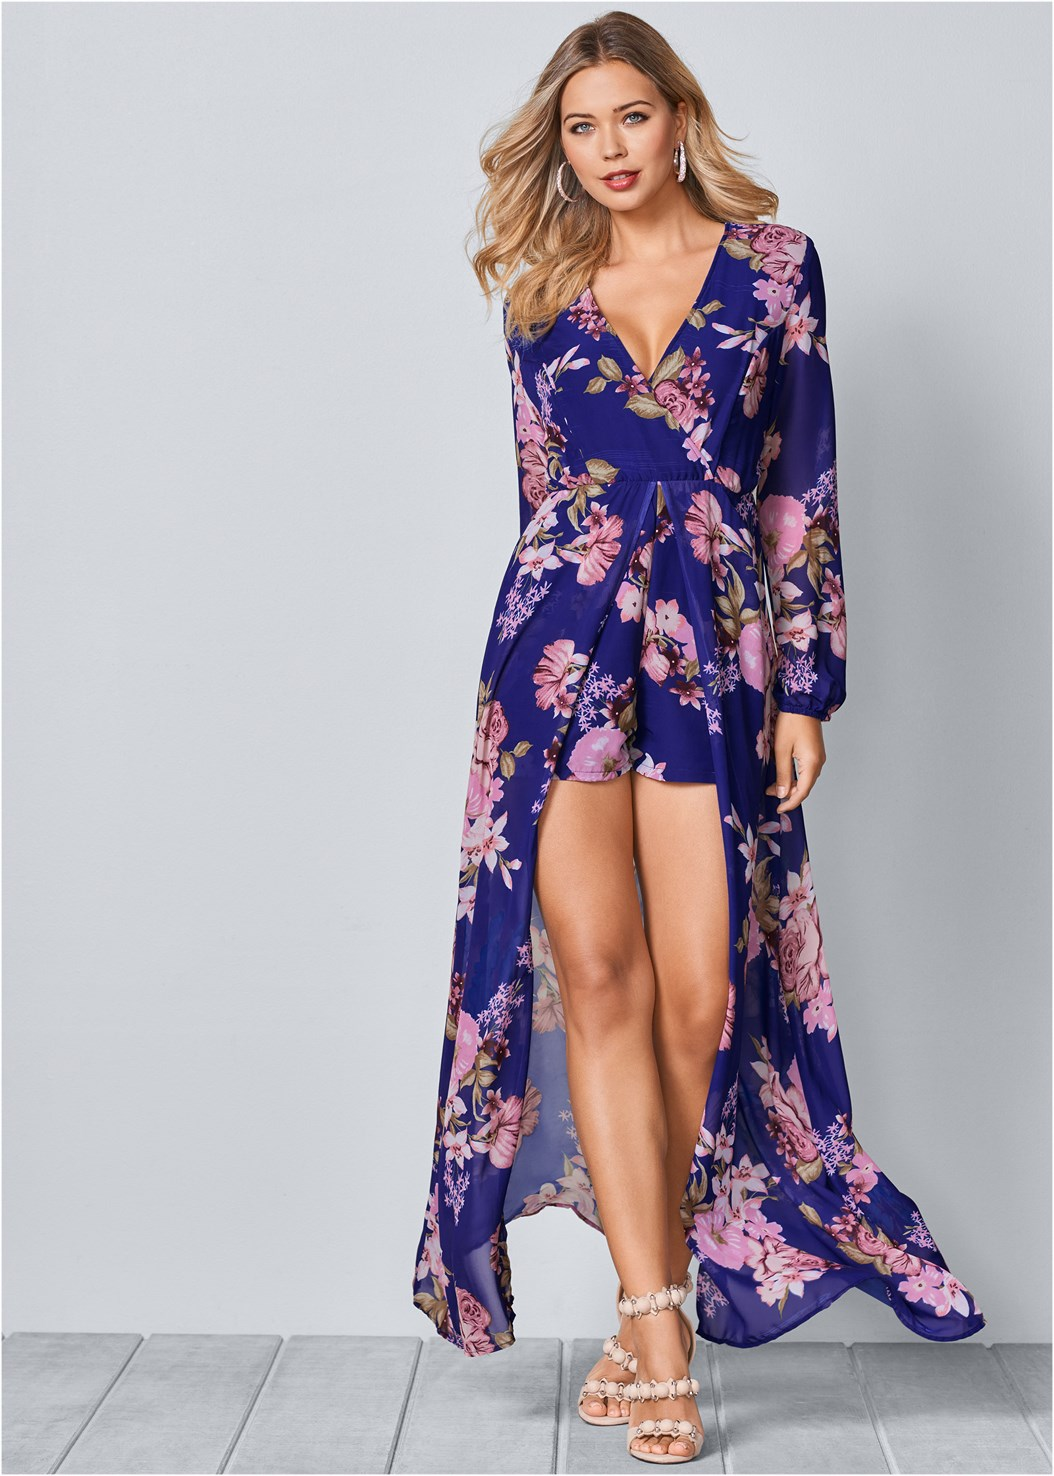 Printed Romper,Venus Cupid Bra,High Heel Strappy Sandals